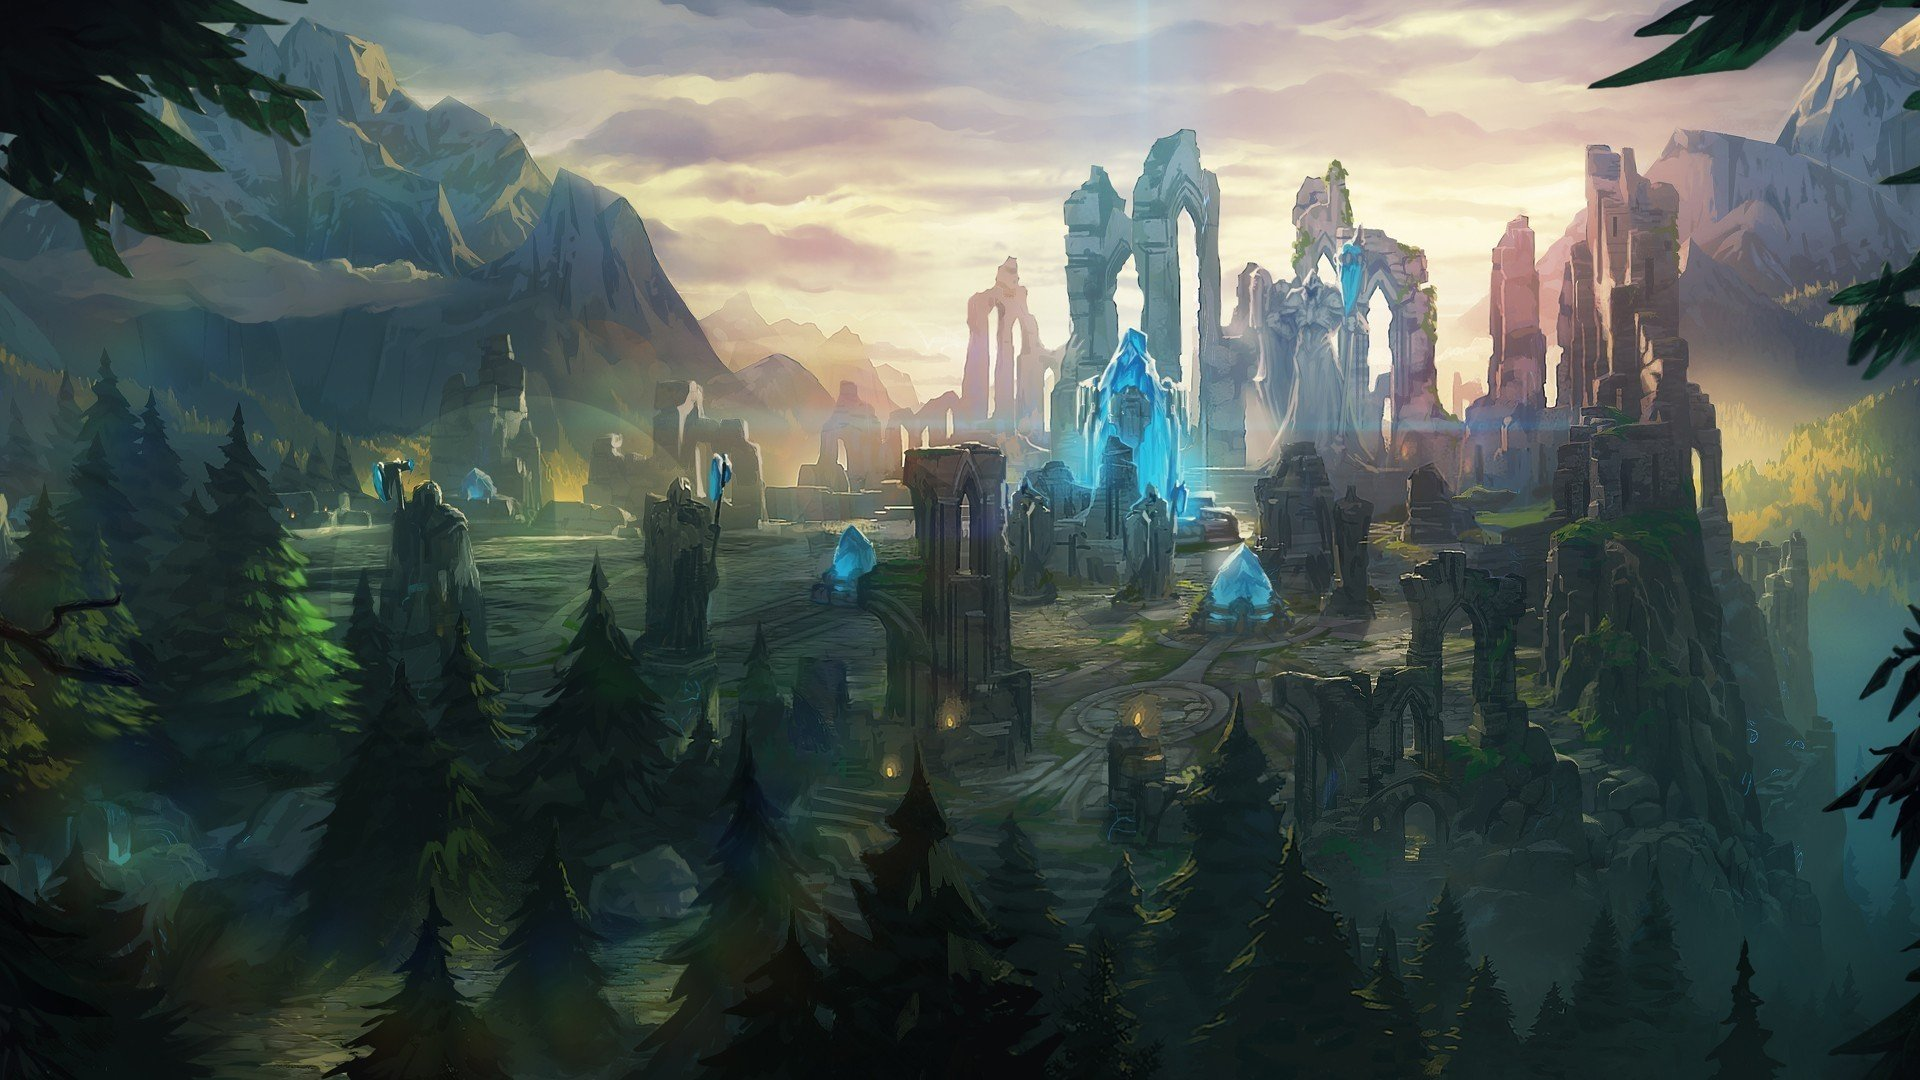 Summoners Rift League of Legends HD Wallpaper Background 1920x1080